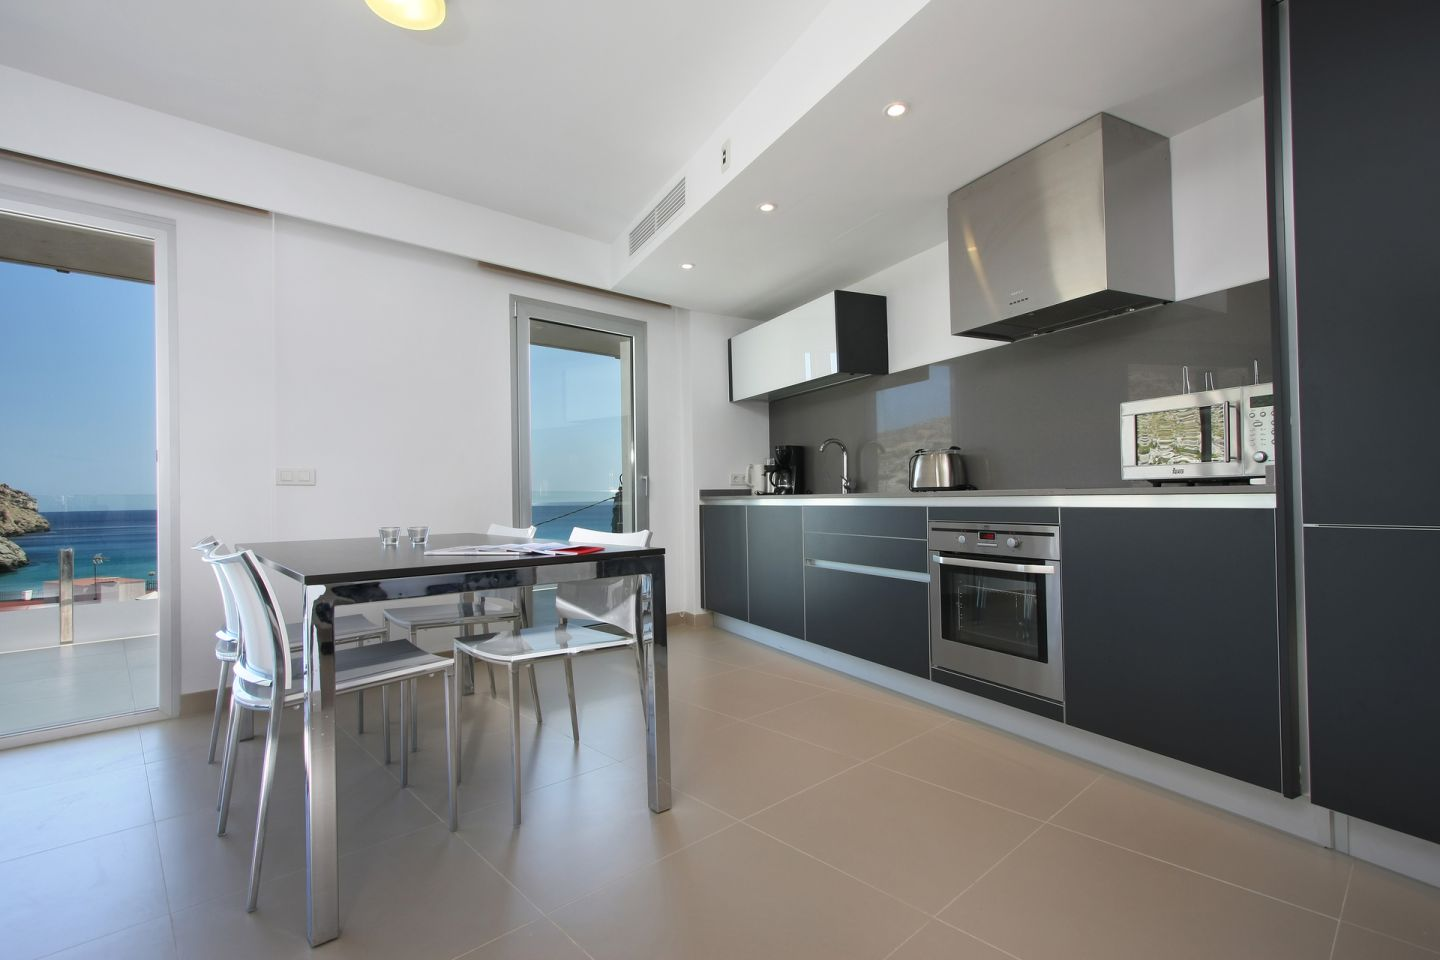 2 Bed Other for sale in Cala San Vicente 6